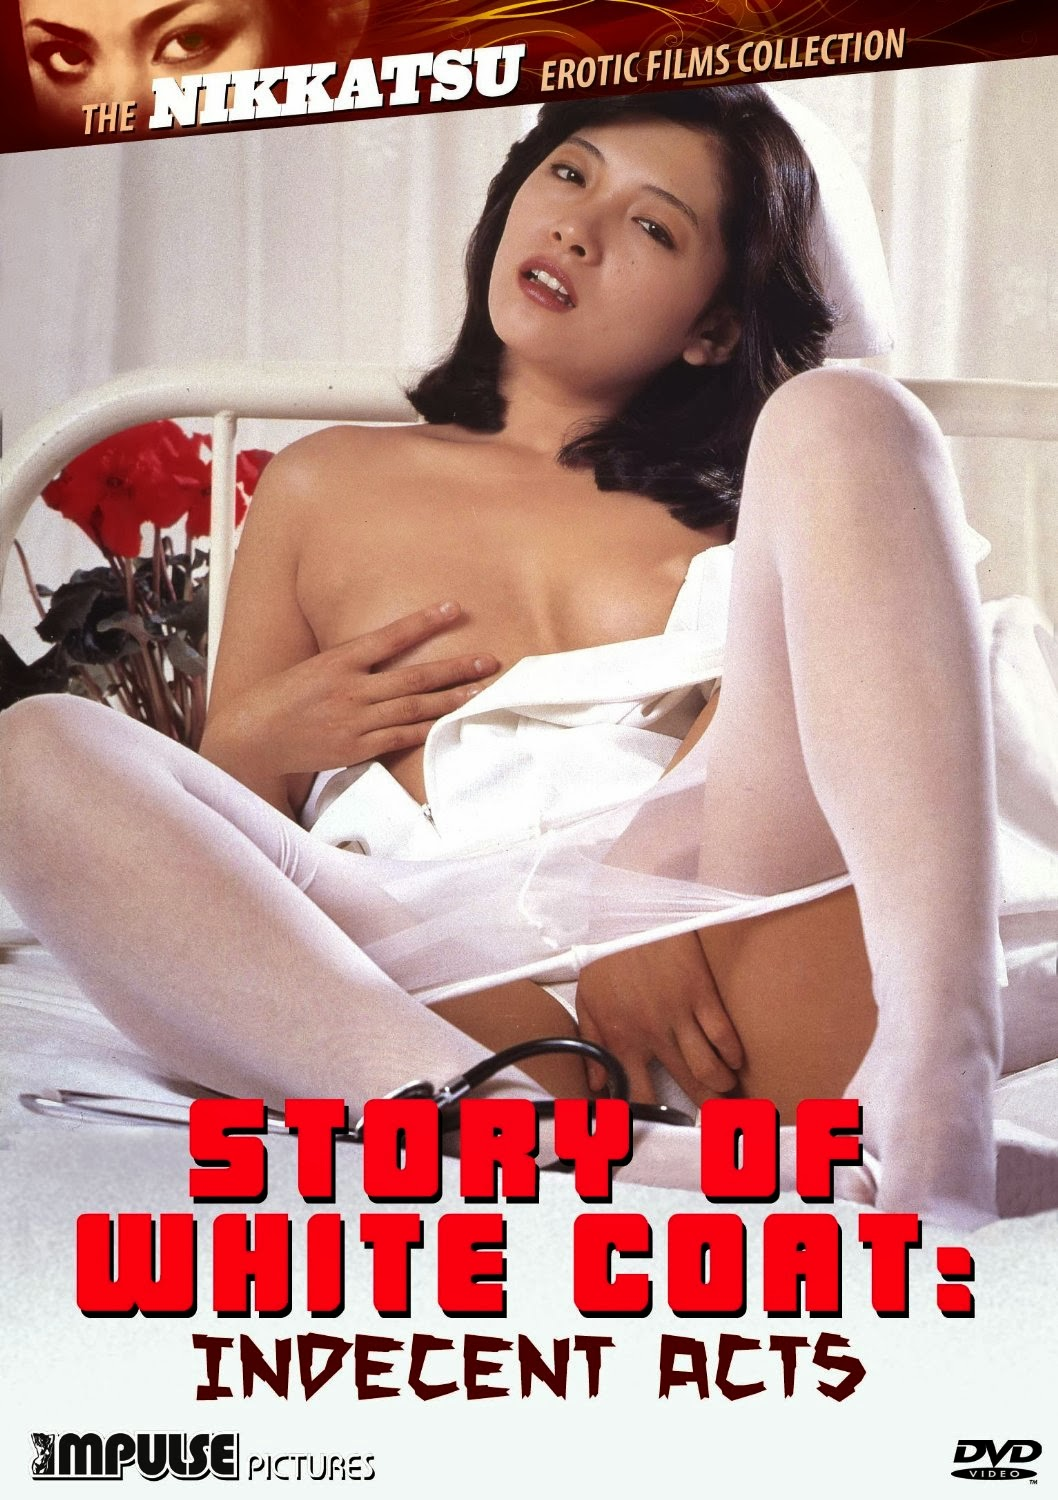 Story of White Coat: Indecent Acts (1984)